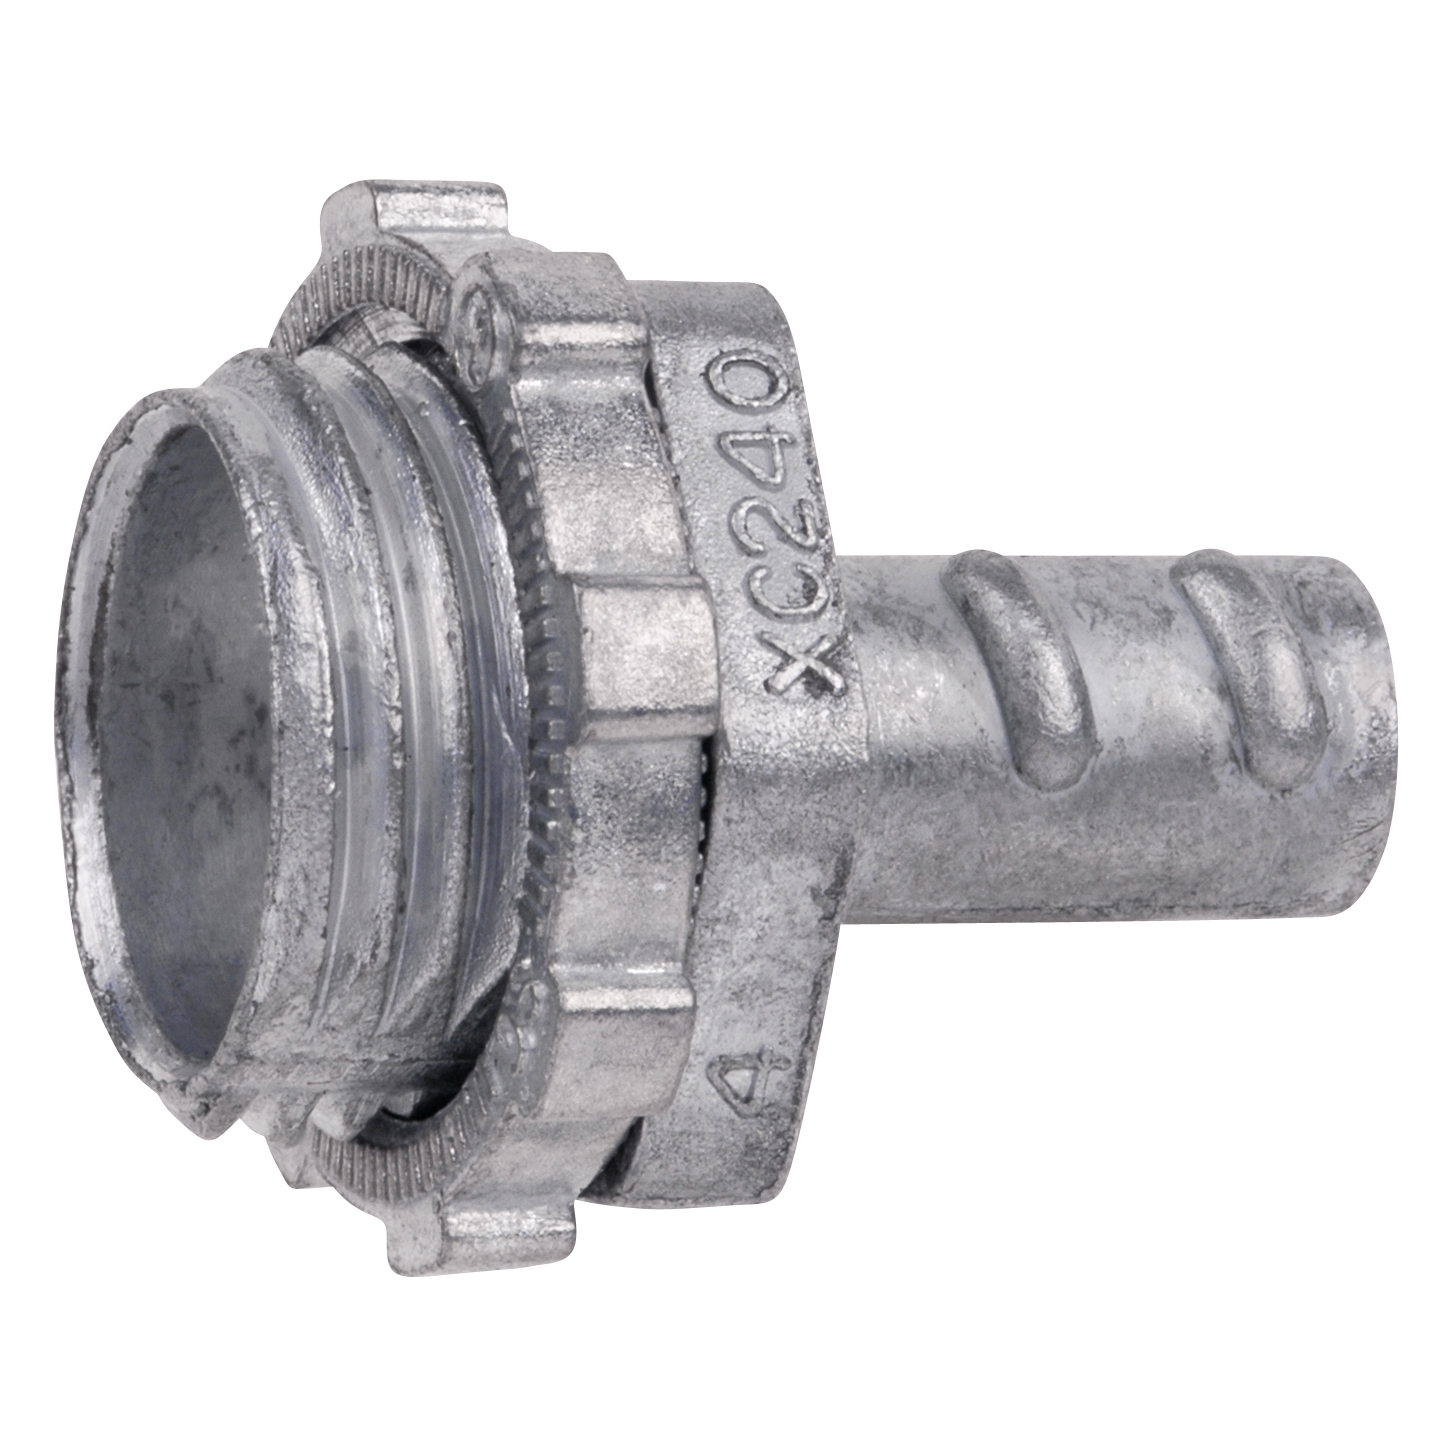 Thomas & Betts XC240 Electrical Fitting